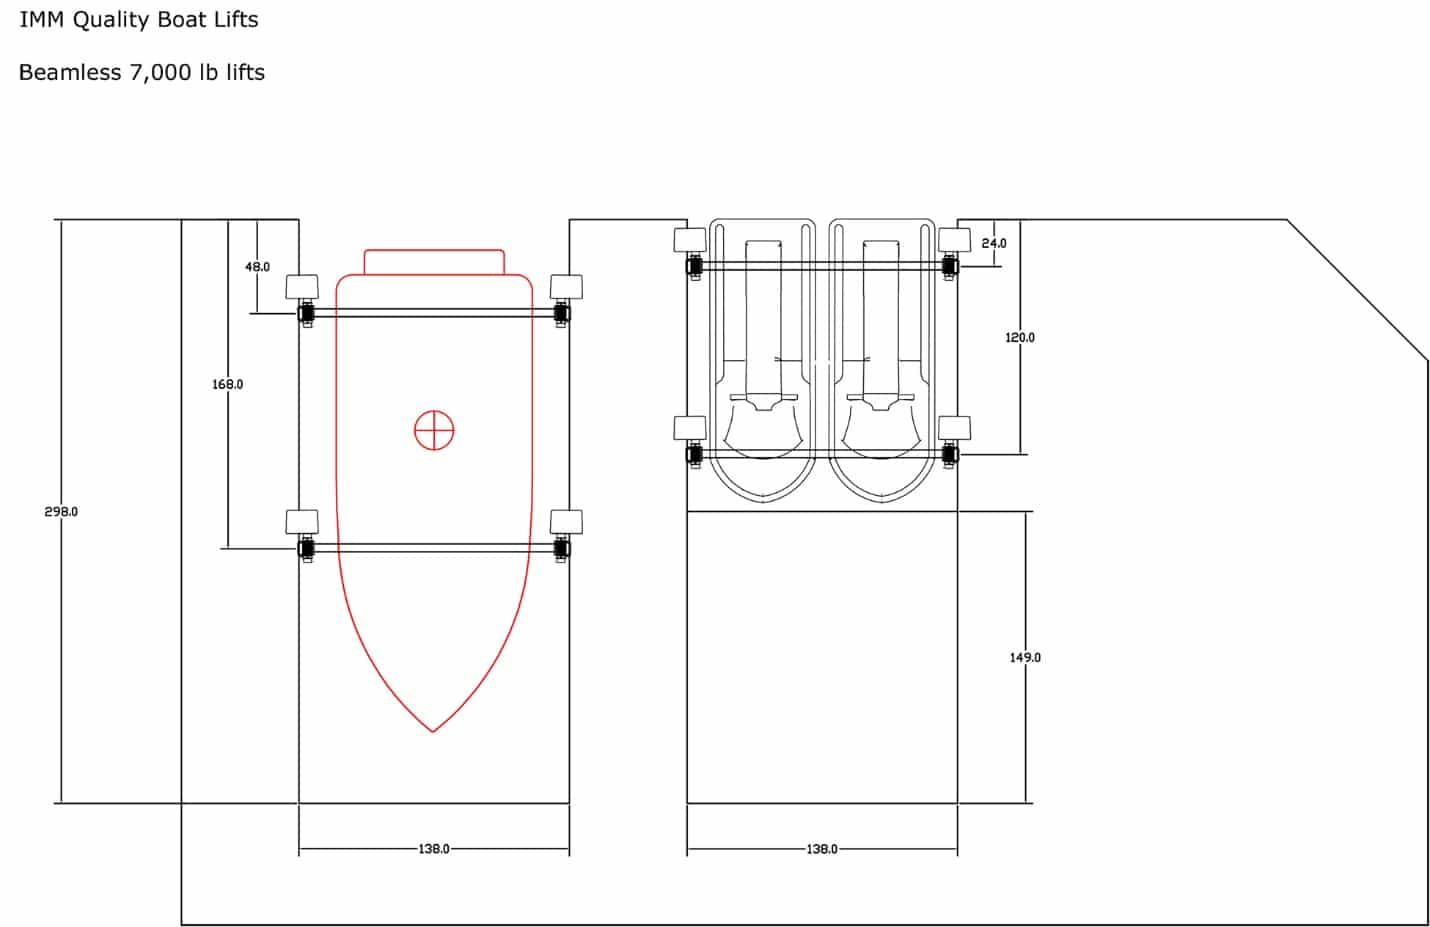 Drawn Up Plans Of Beamless Boat Lift